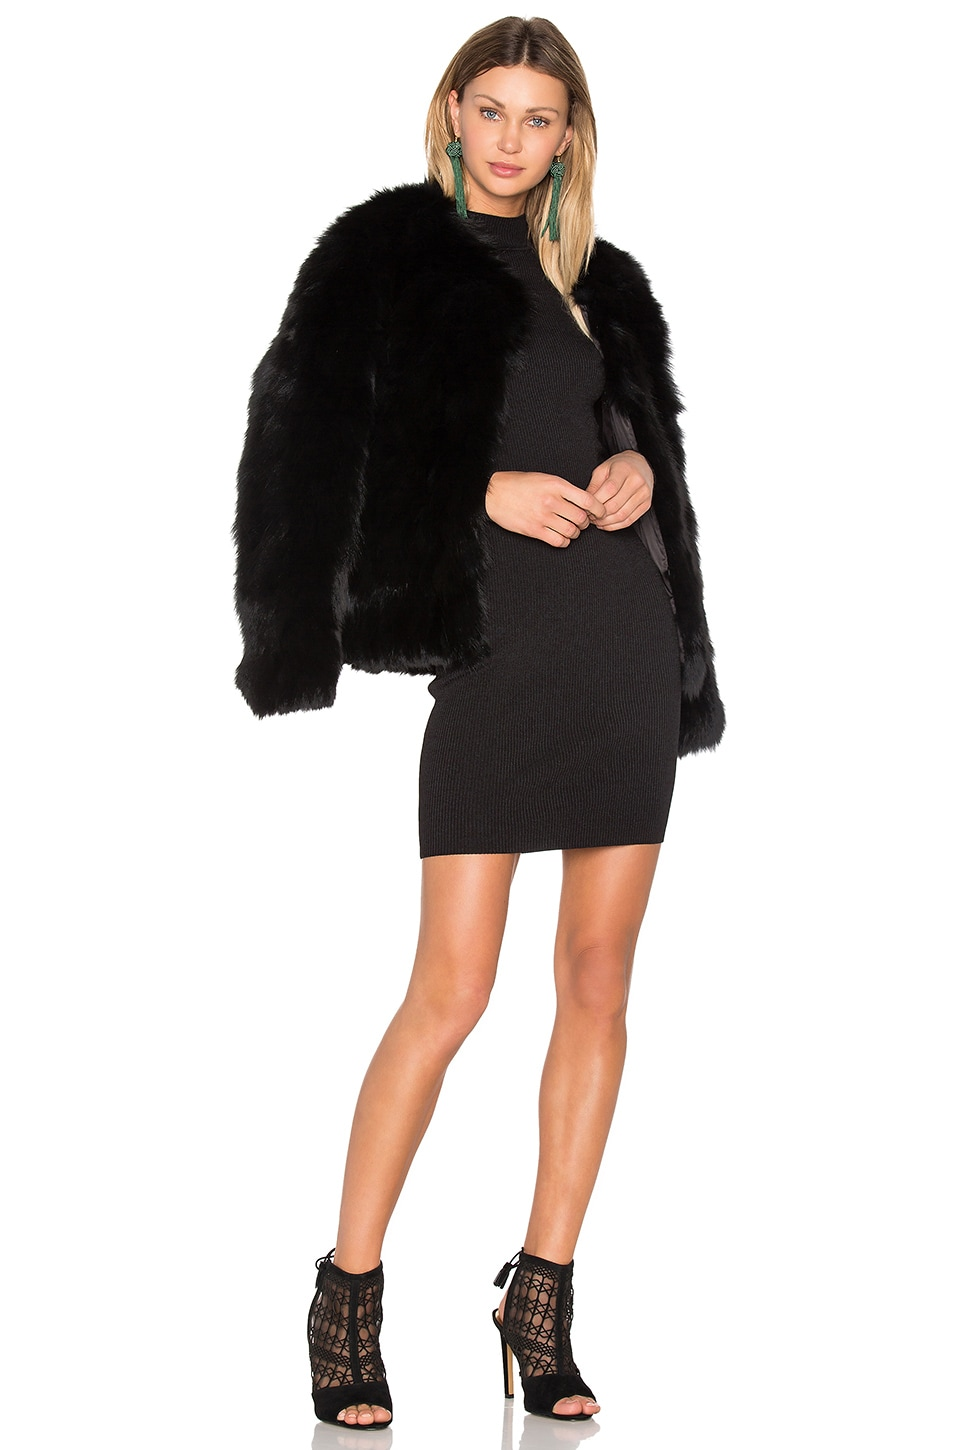 Helen Fox Fur Jacket by EAVES